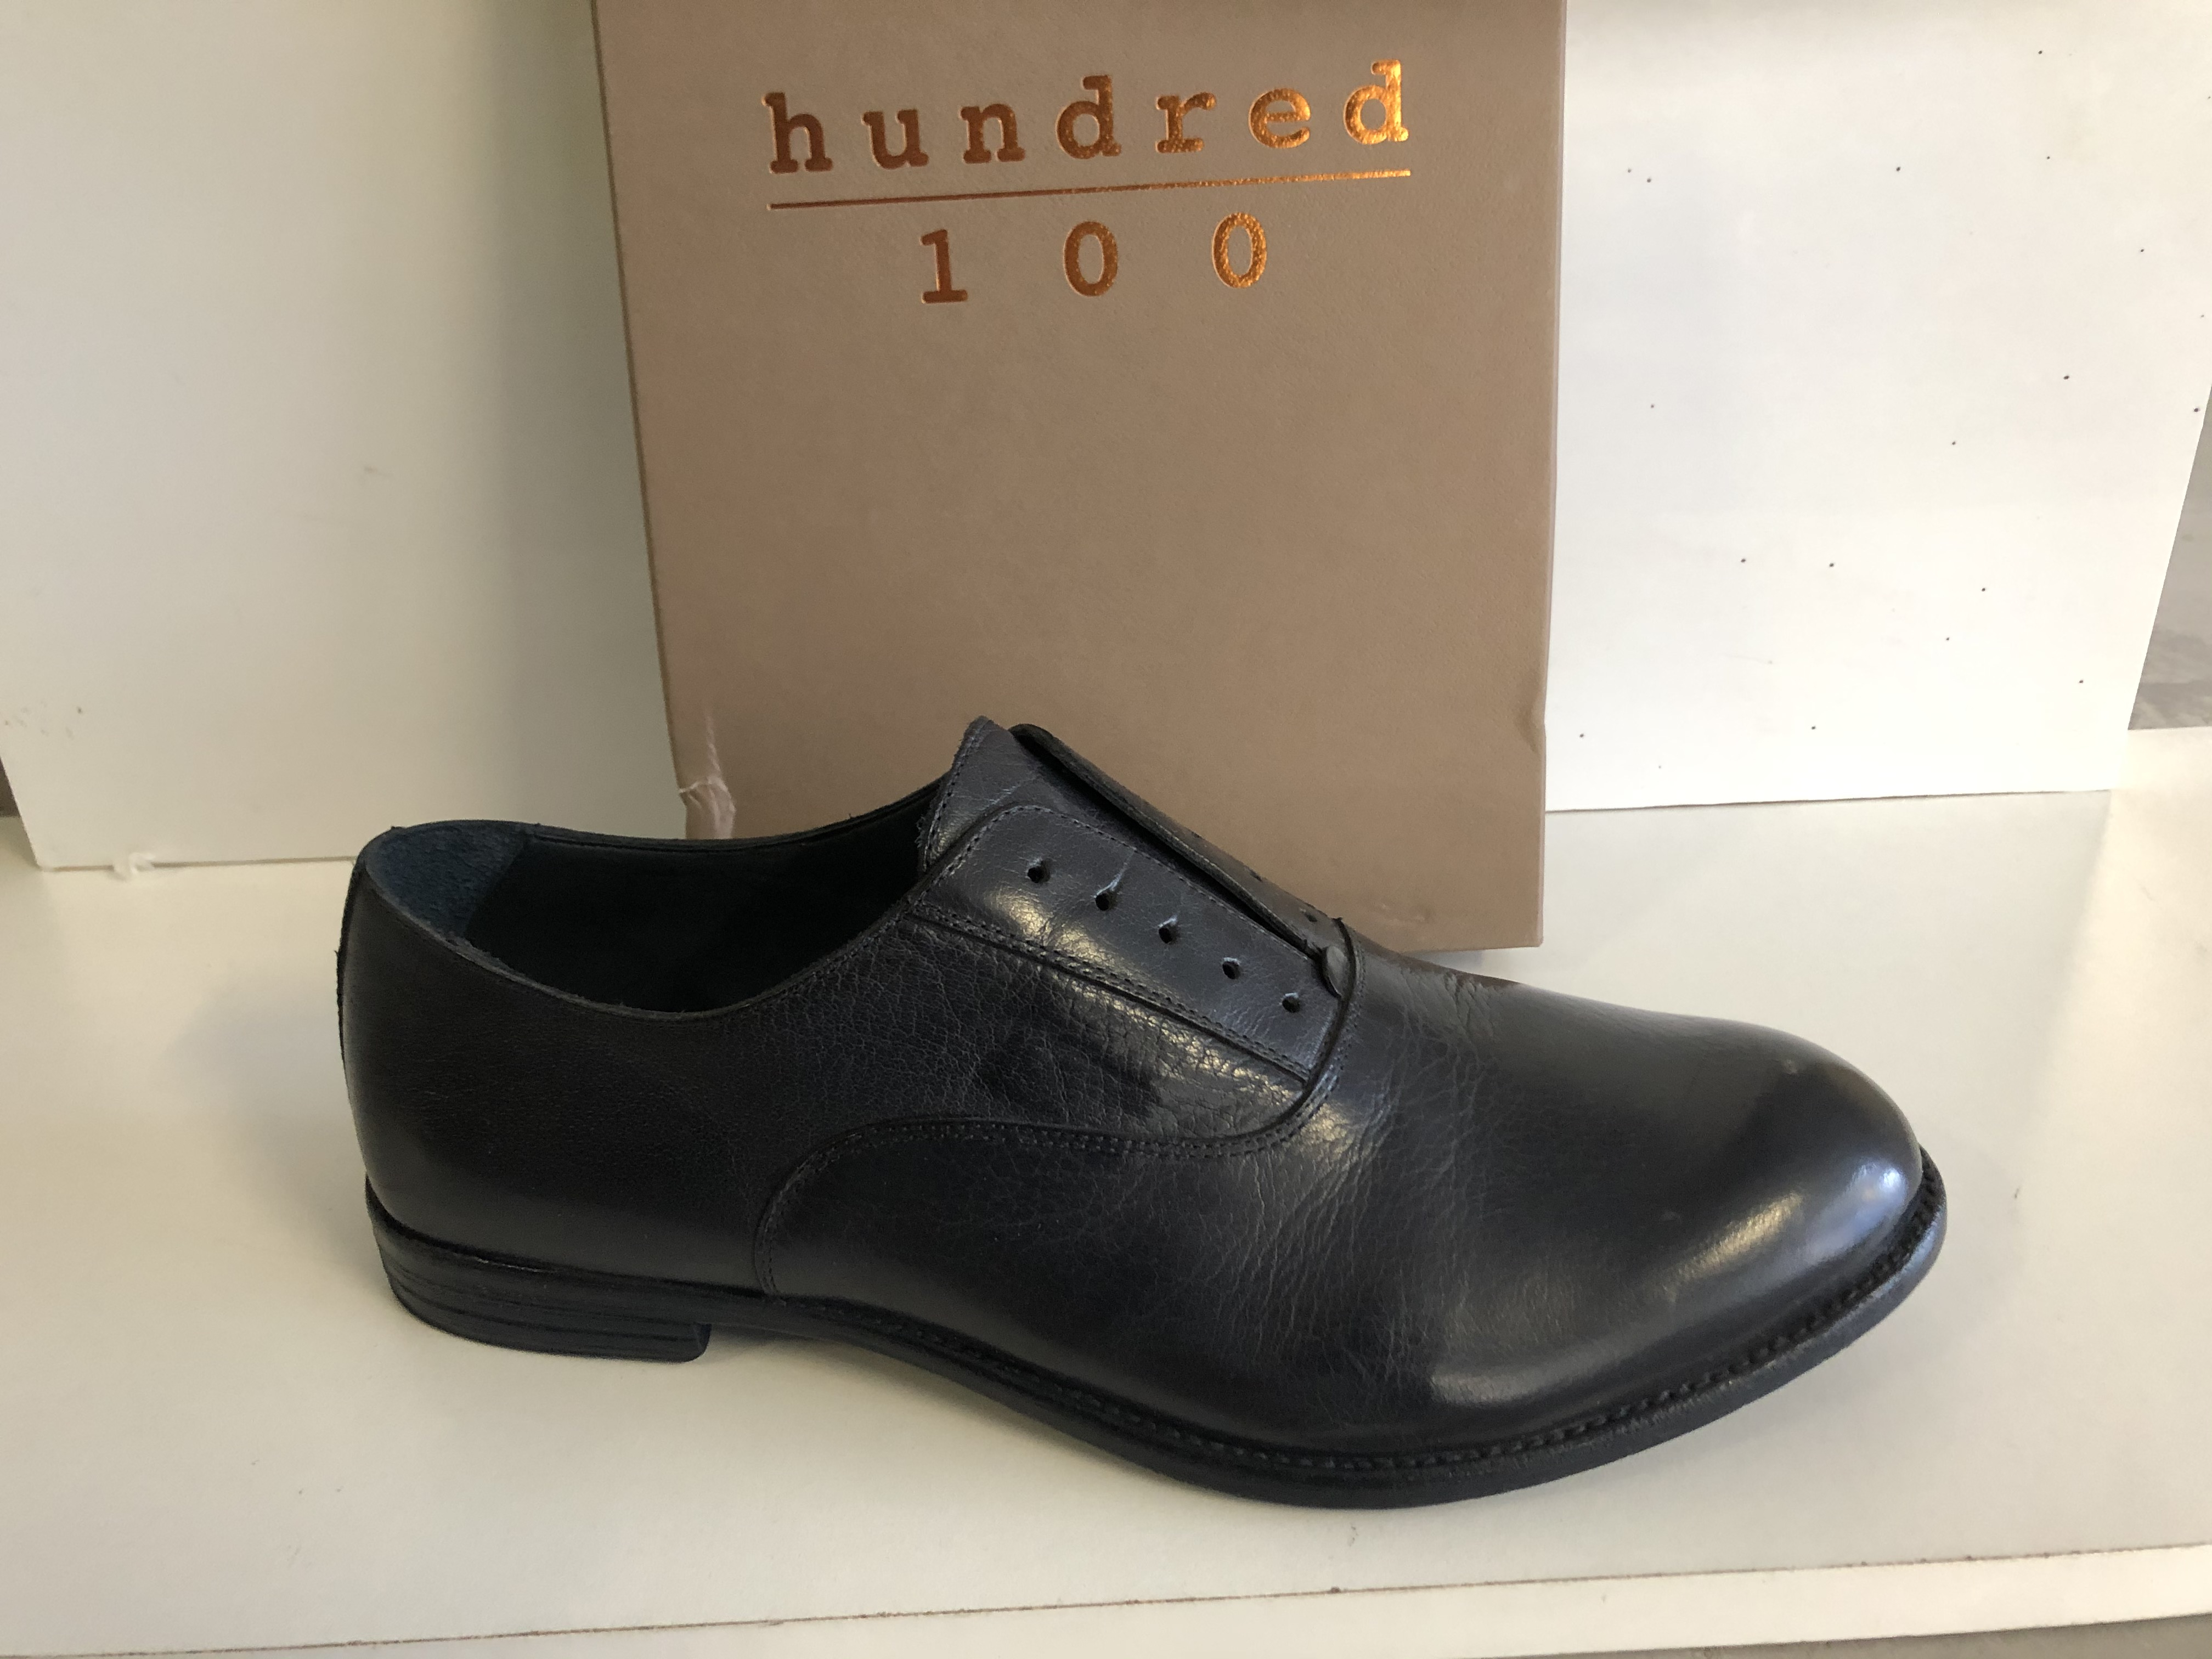 Hundred 100 Scarpa Uomo Francesina Senza Lacci Tuffato Blu M283-62E